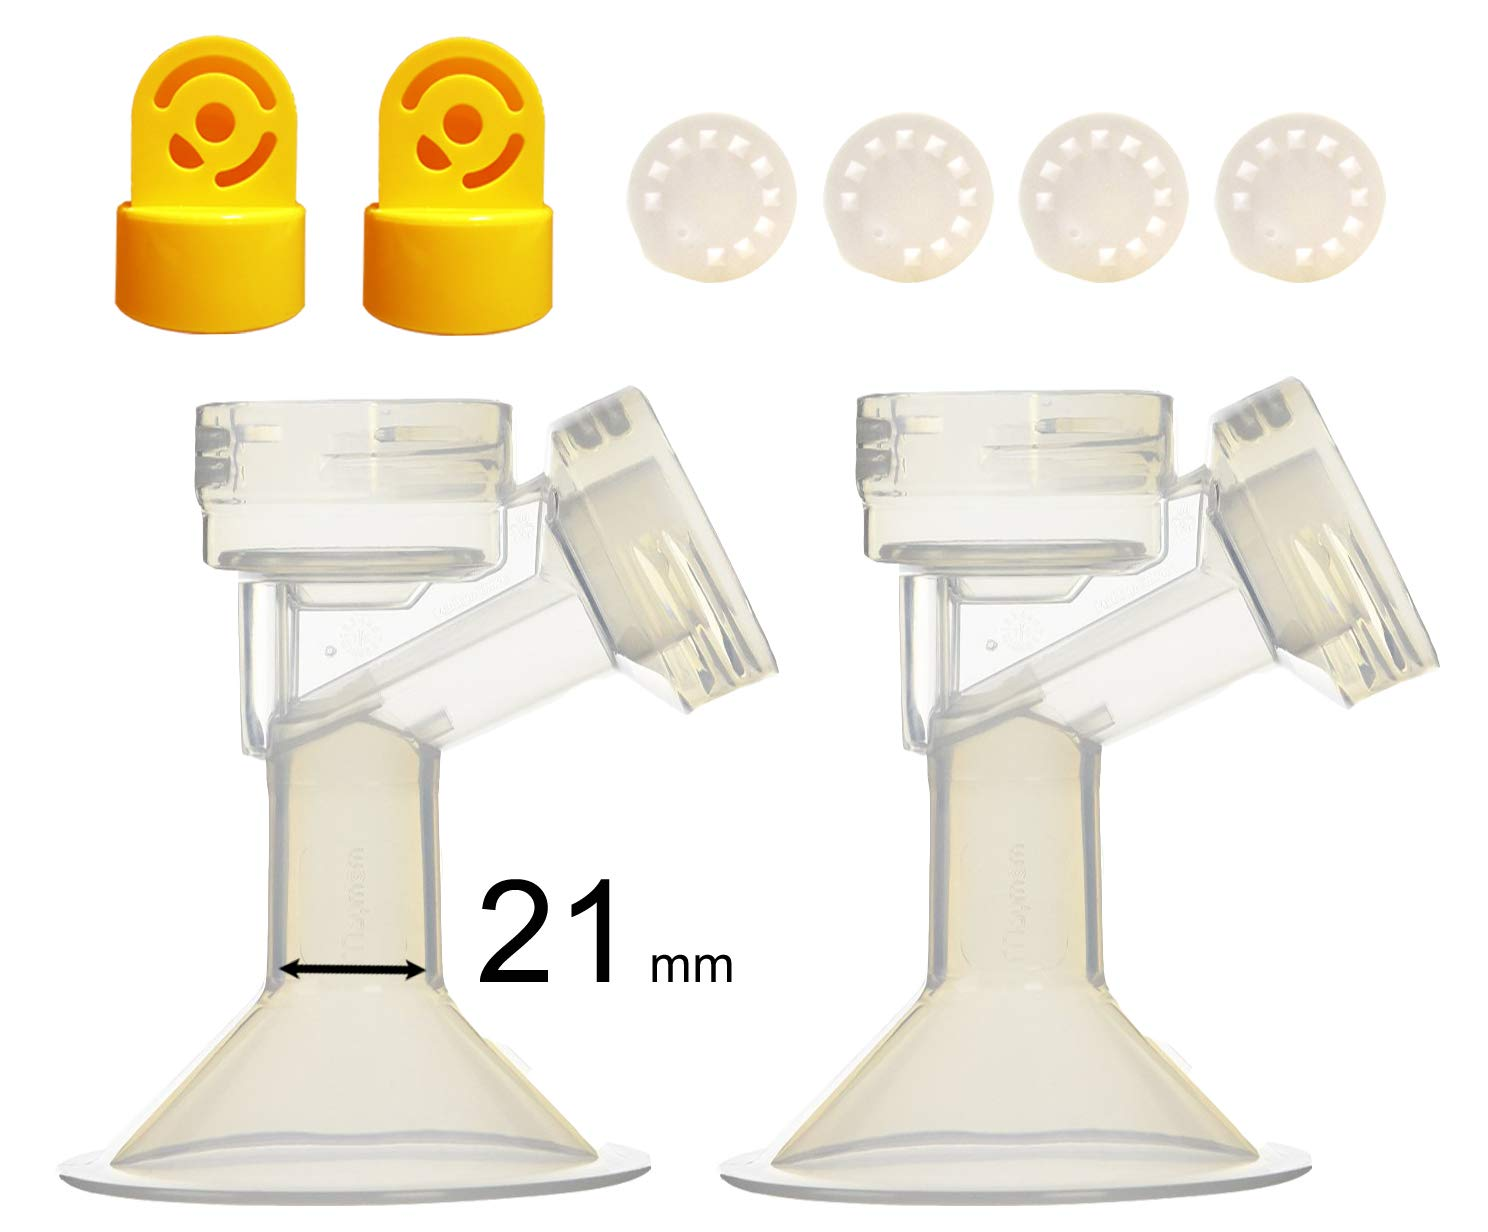 21 mm 2xOne-Piece Small Breastshield w/ Valve and Membrane for Medela Breast Pumps; Replacement to Medela PersonalFit 21 Breastshield and Personal Fit Connector; Made by Maymom M001-2LF2V4M